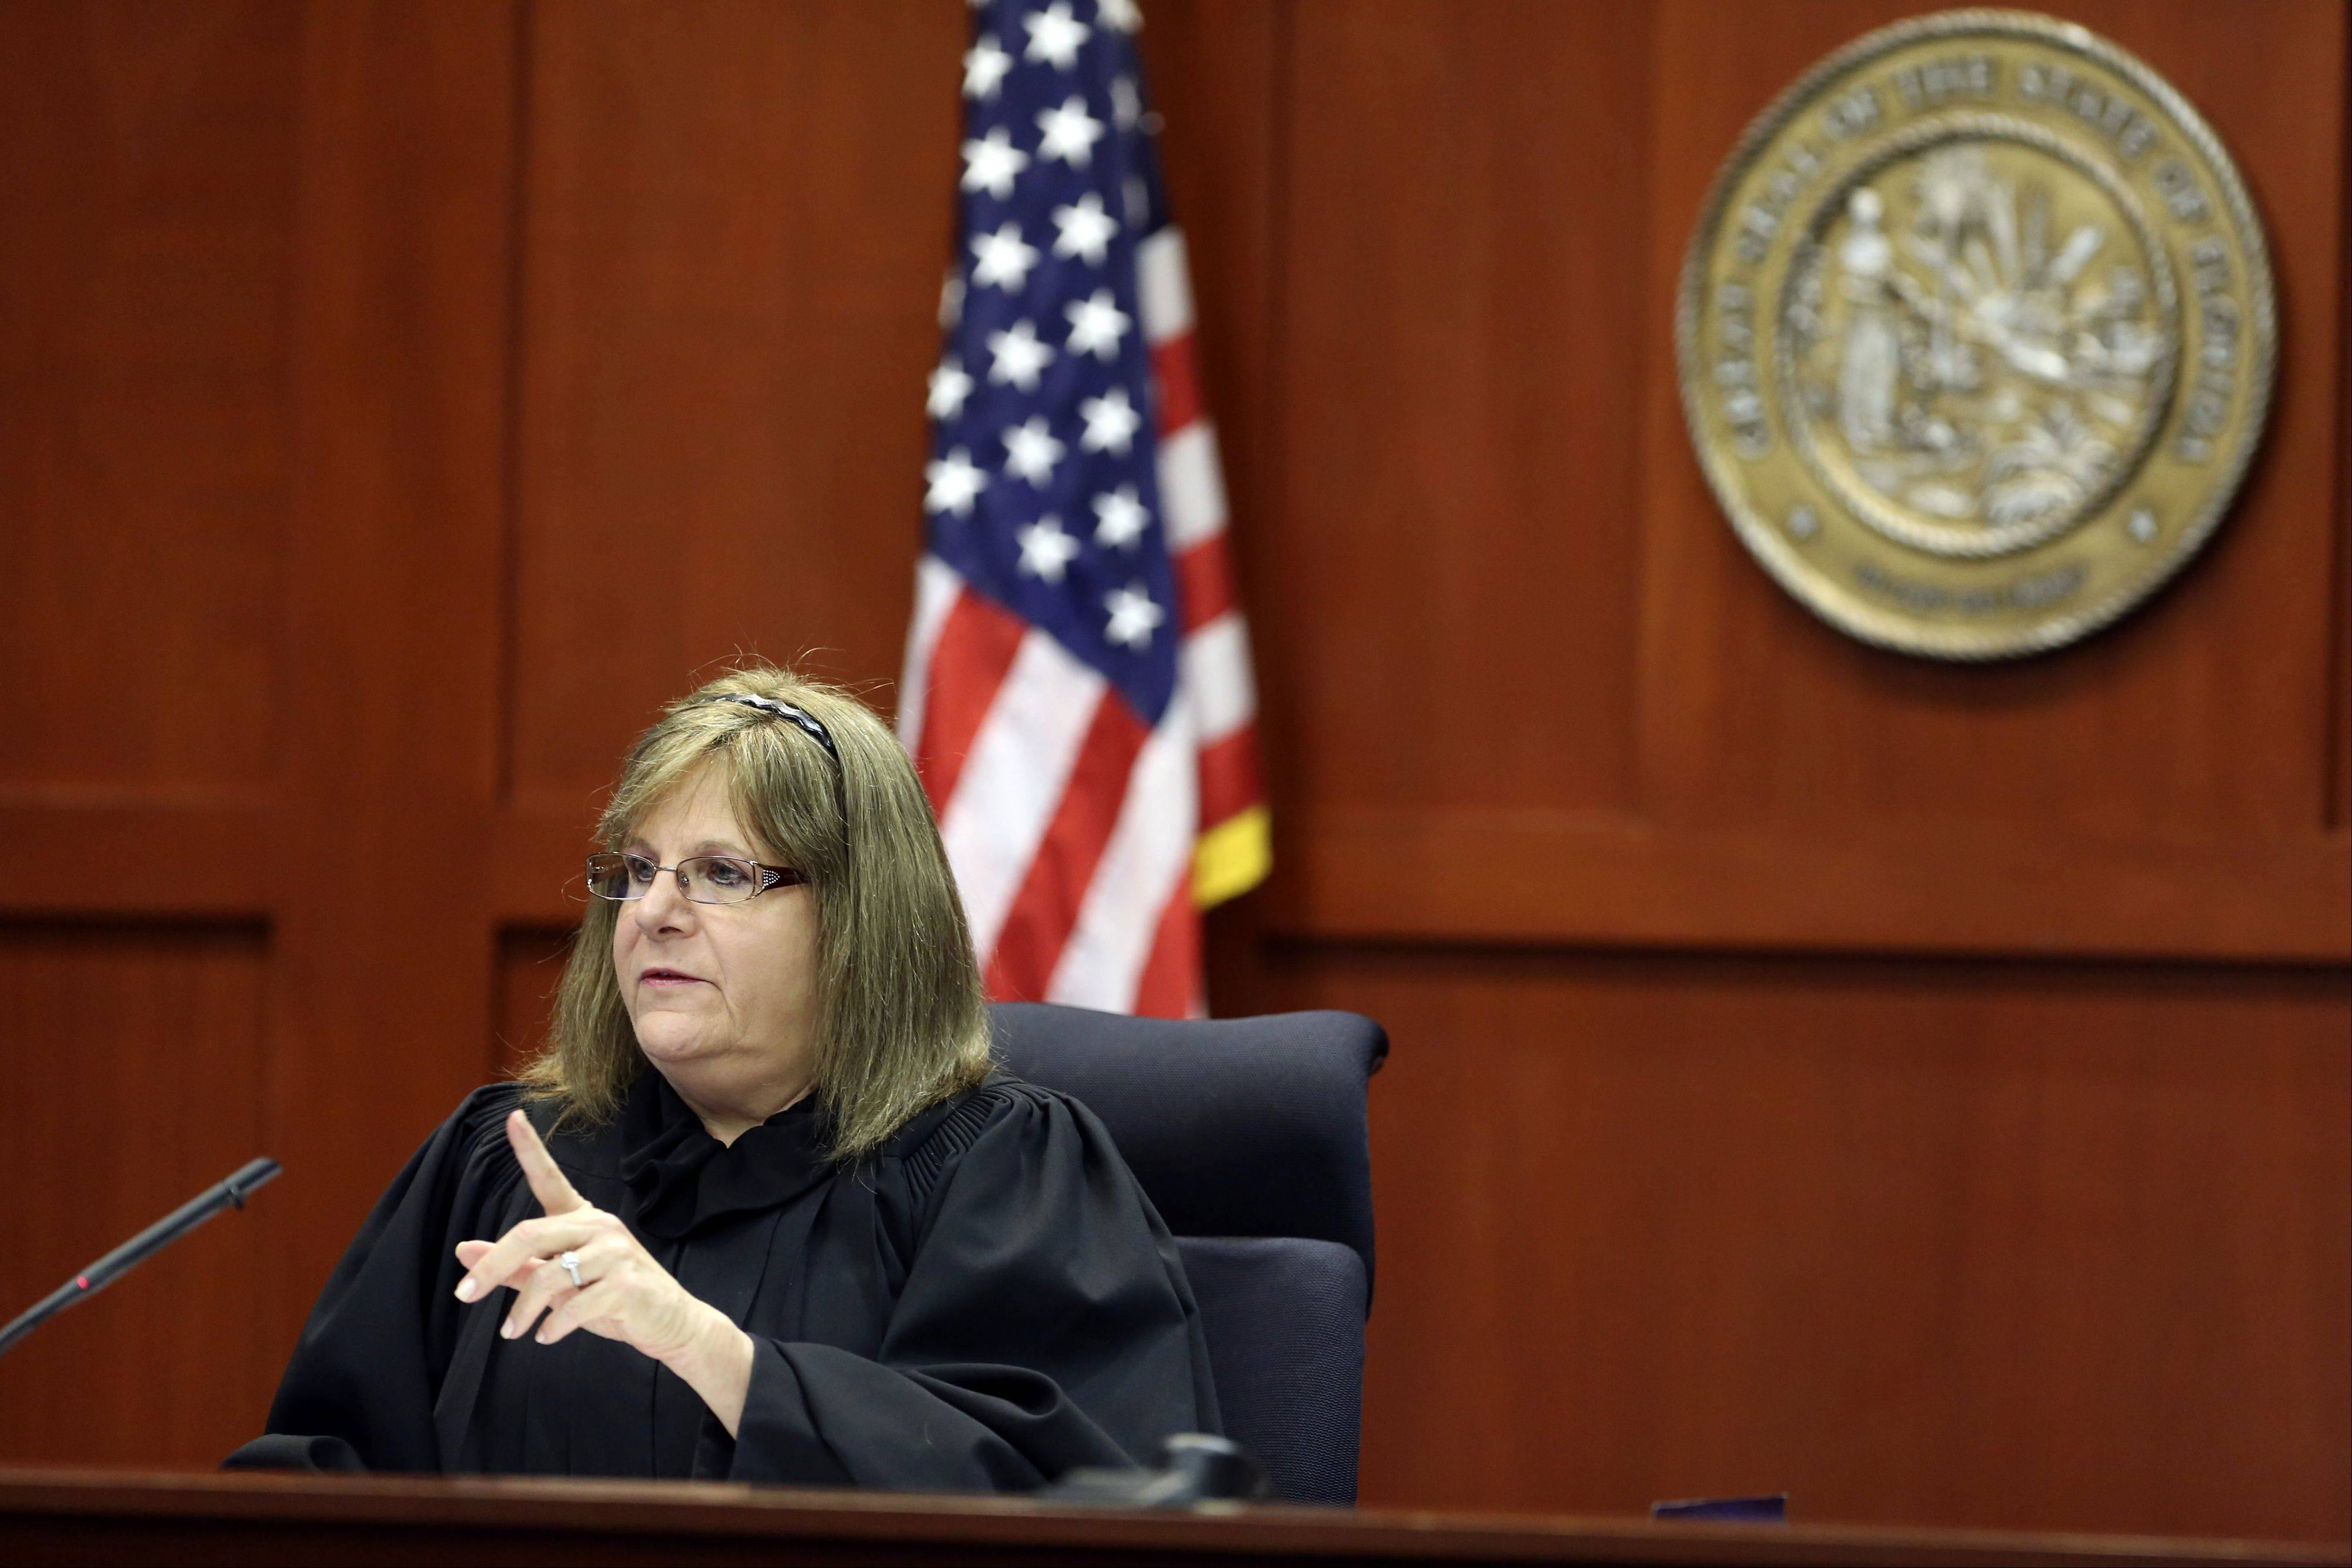 Judge Debra Nelson gives instructions to attorneys during George Zimmerman's trial in Seminole circuit court in Sanford, Fla. Thursday. Zimmerman has been charged with second-degree murder for the 2012 shooting death of Trayvon Martin.